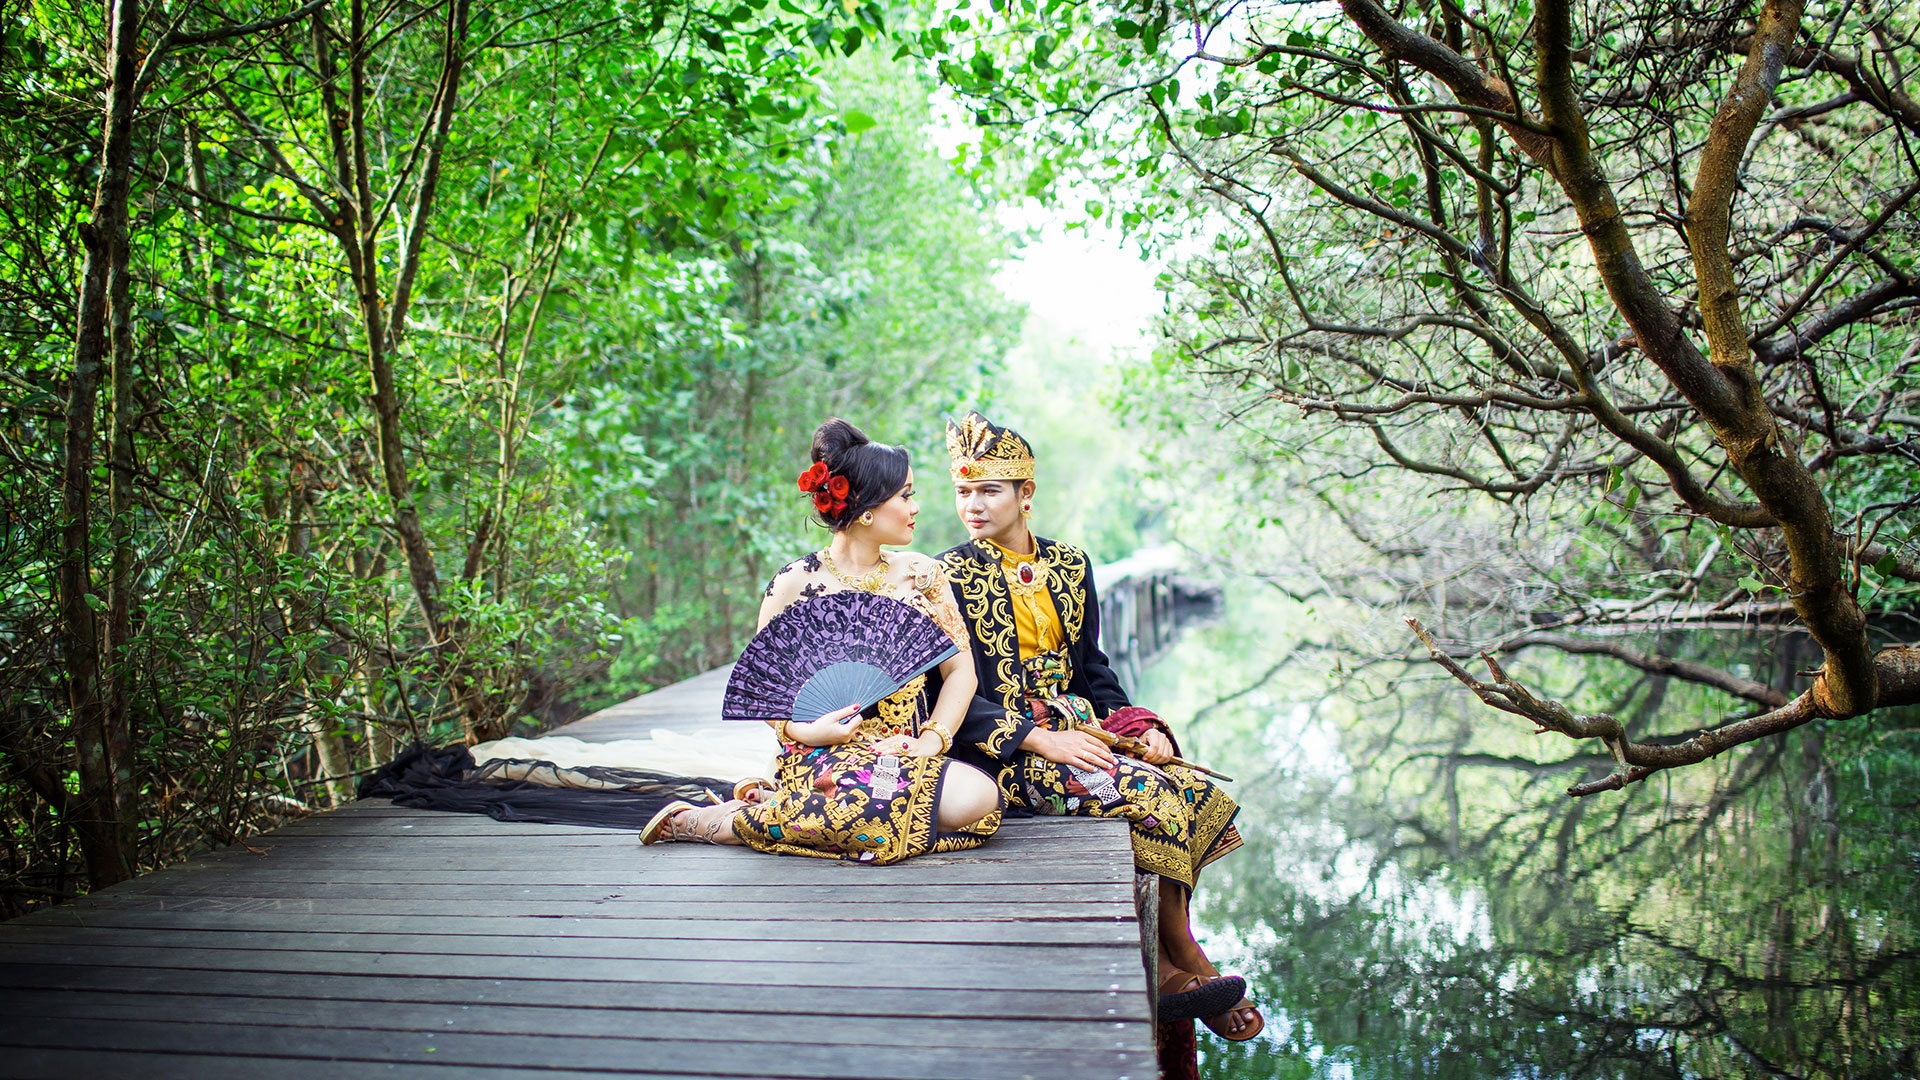 One of the most favorite concept, Balinese pre wedding with Balinese royal modified dresses. Green or red surrounding will...